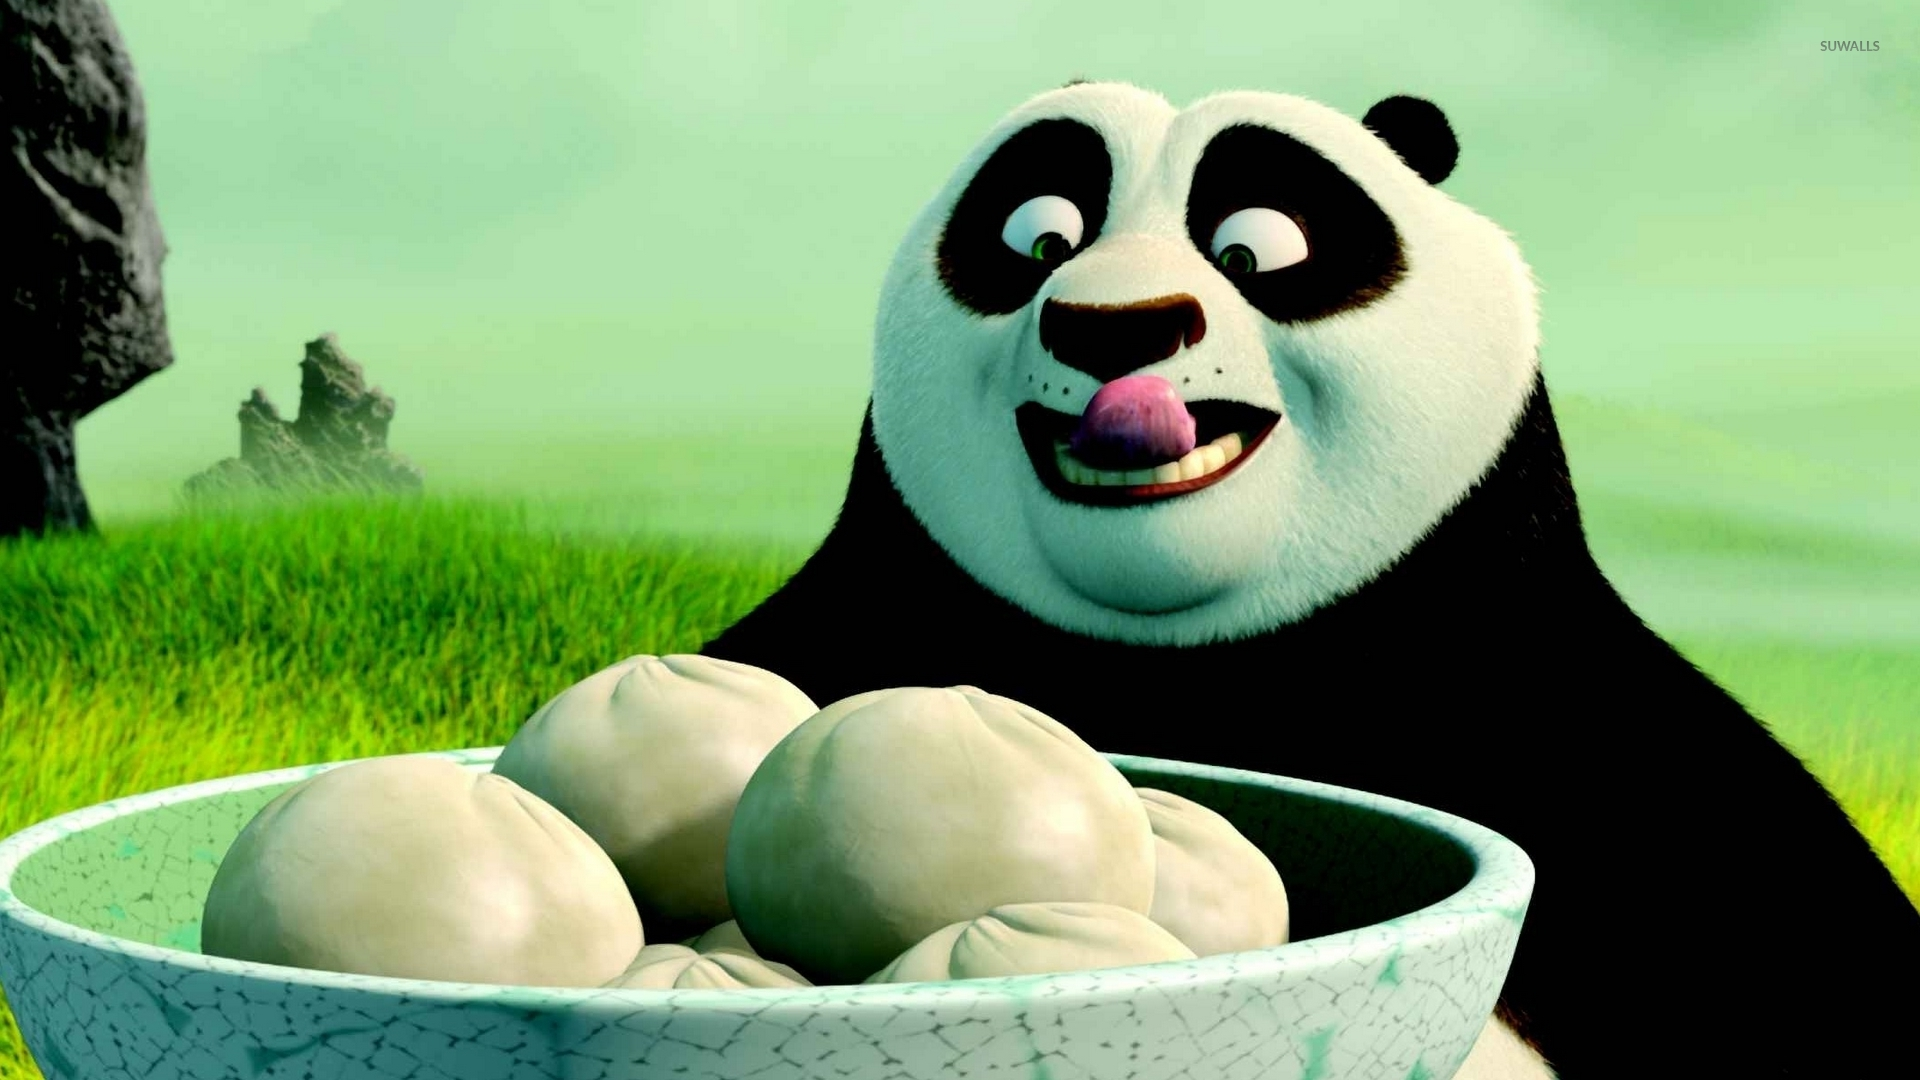 po having dumplings - kung fu panda wallpaper - cartoon wallpapers